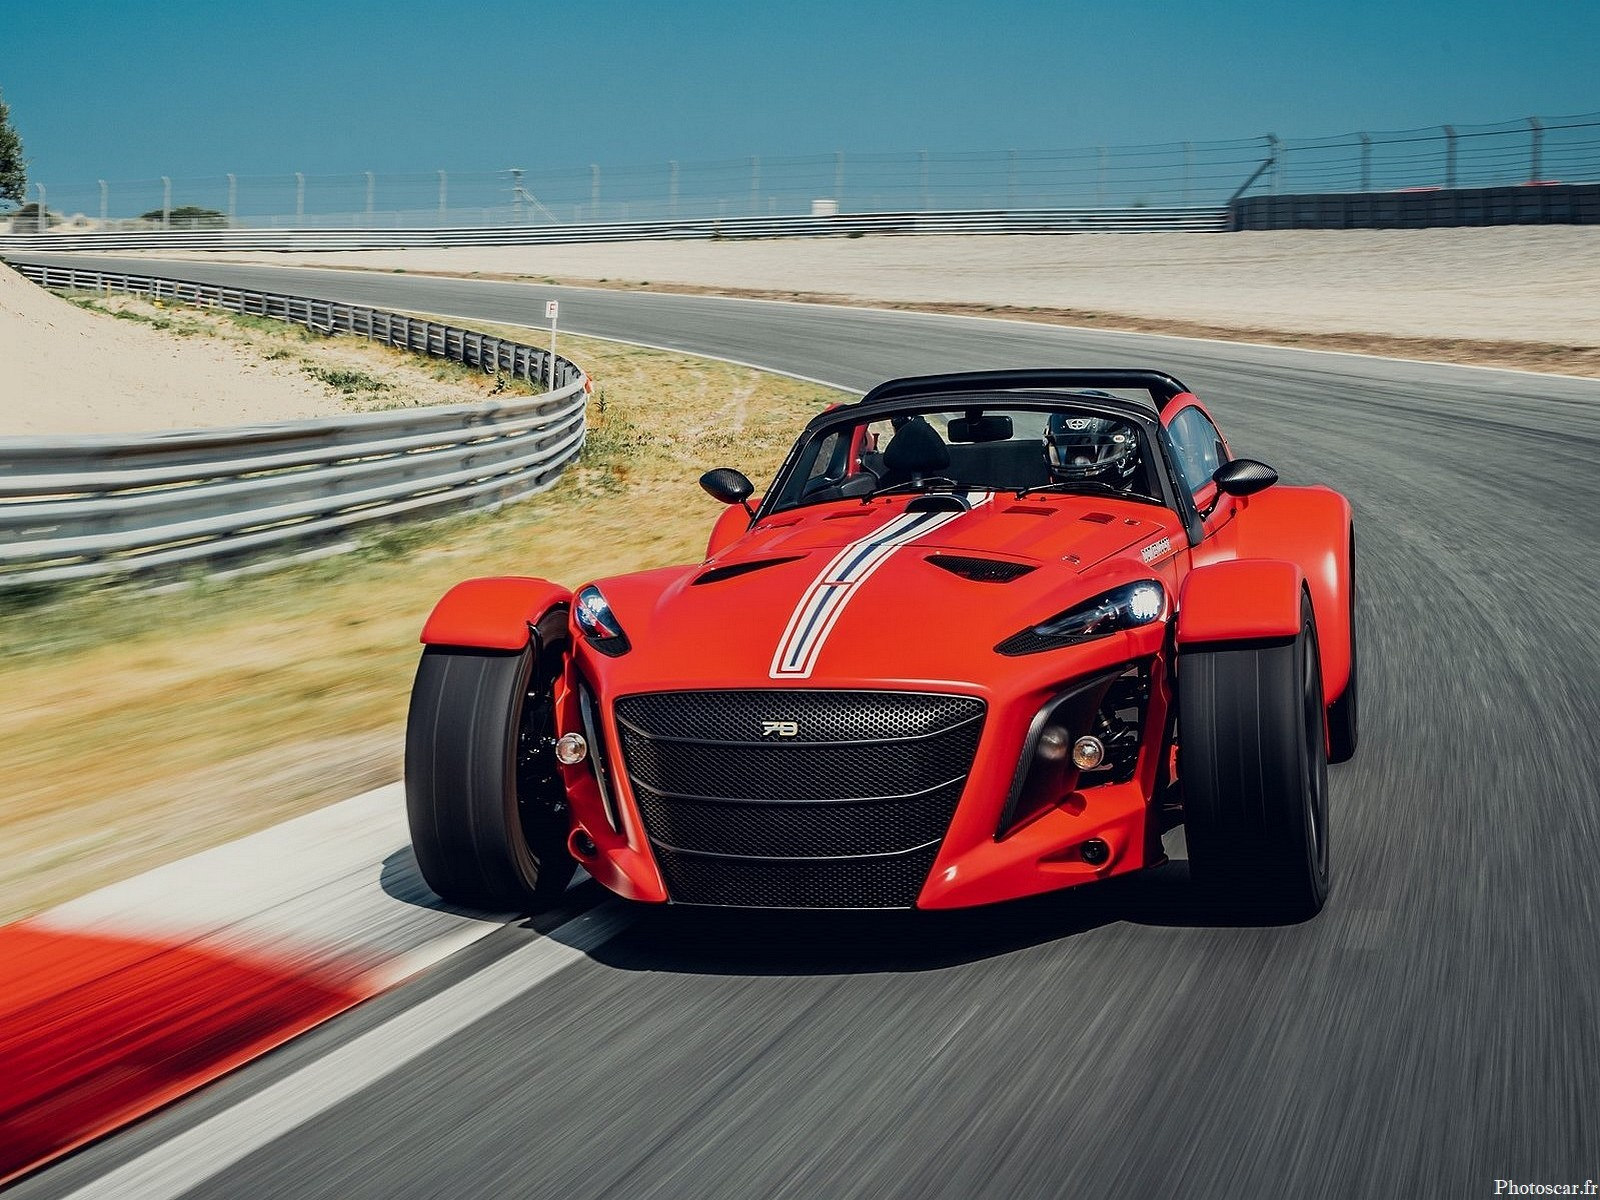 Donkervoort D8 GTO JD70 R 2021